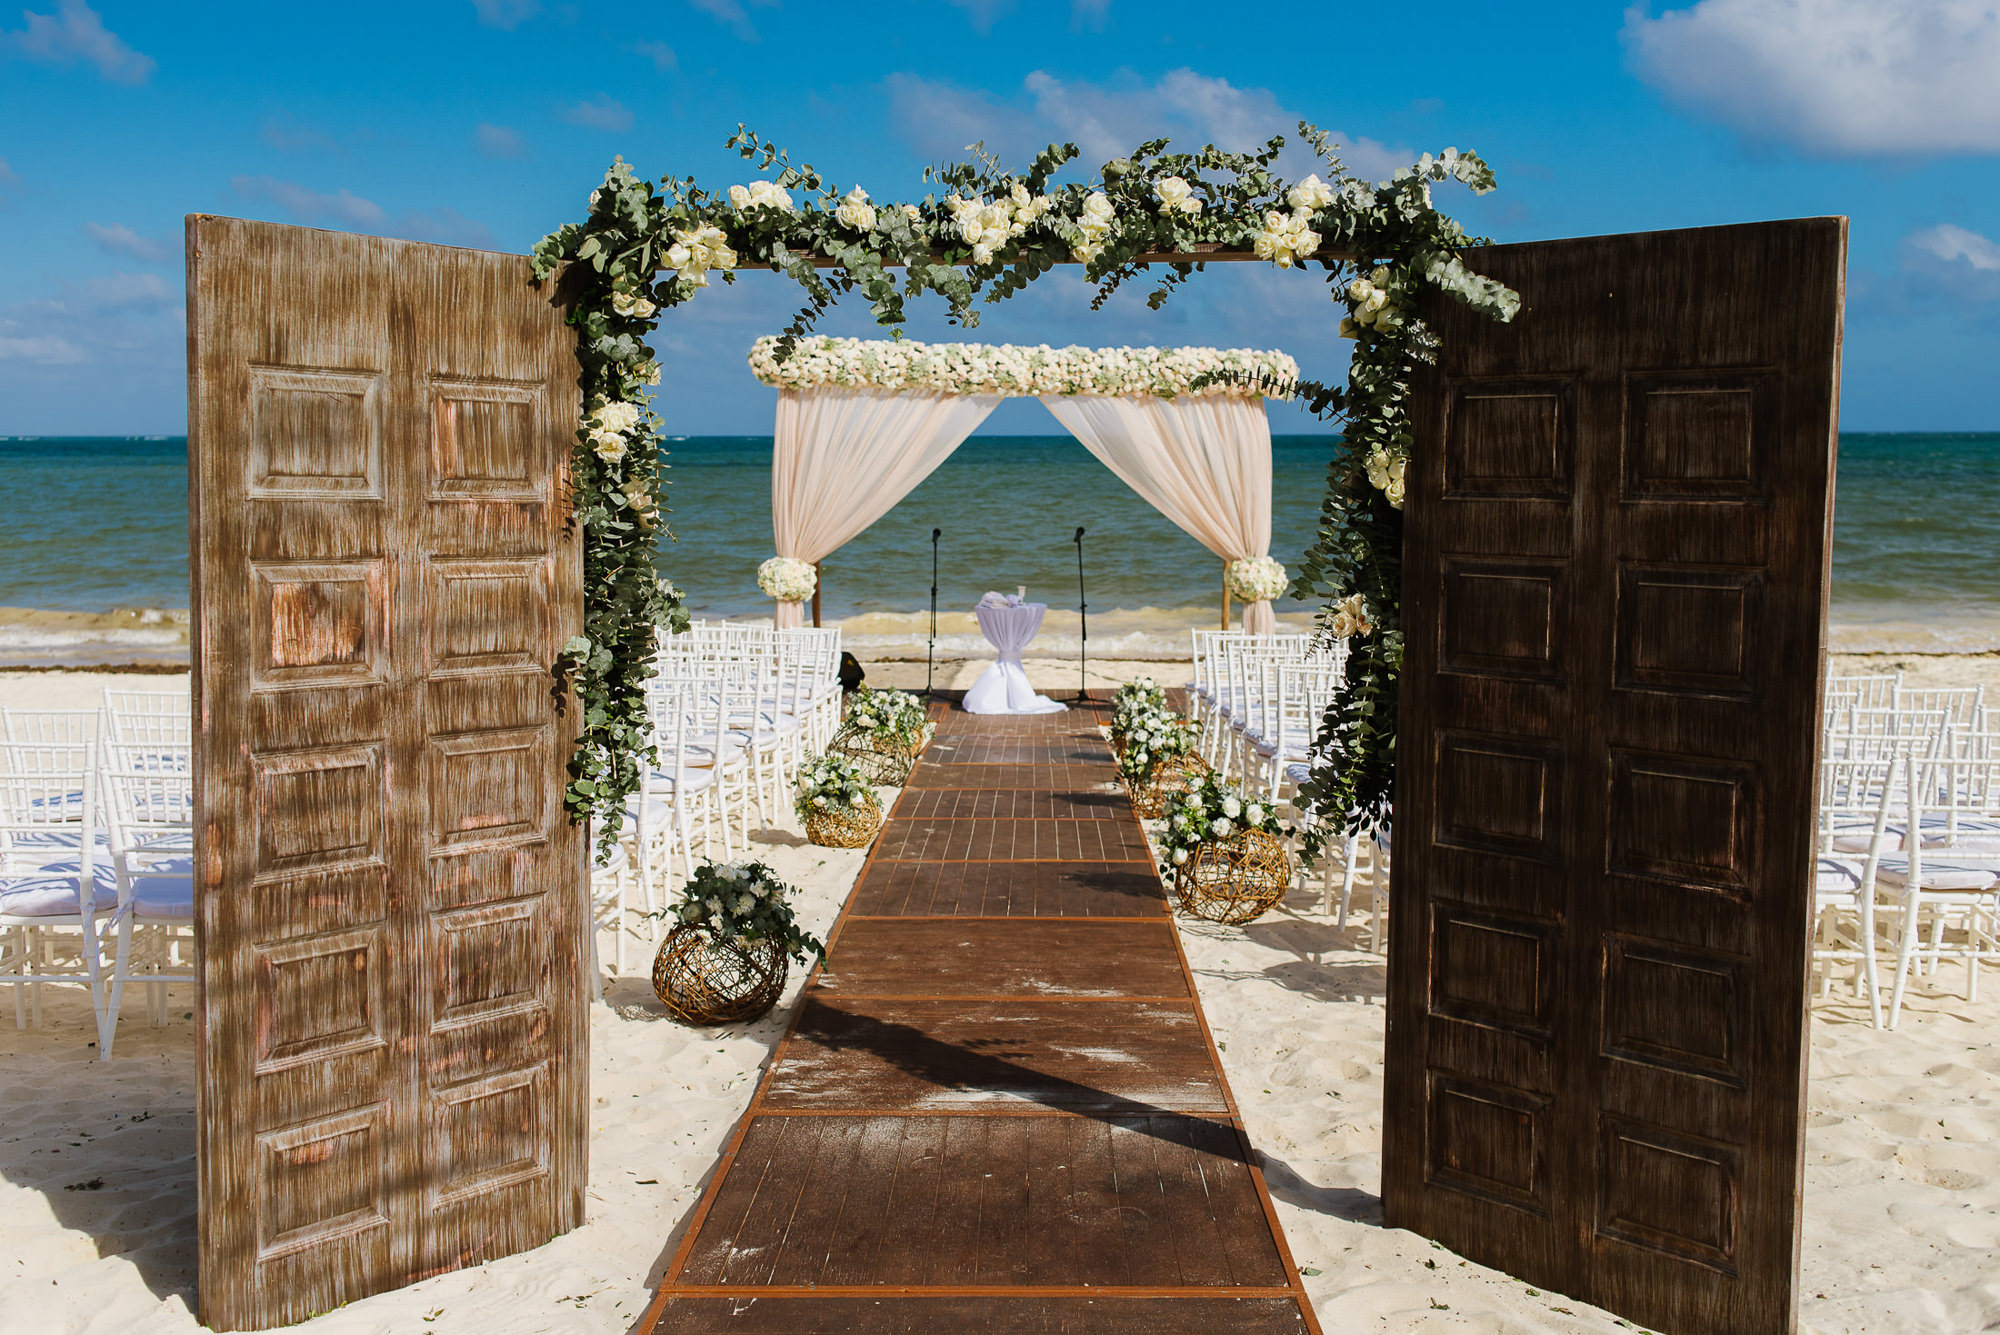 Ceremony decor at the beach with doors and white floral arbor, by Citlalli Rico